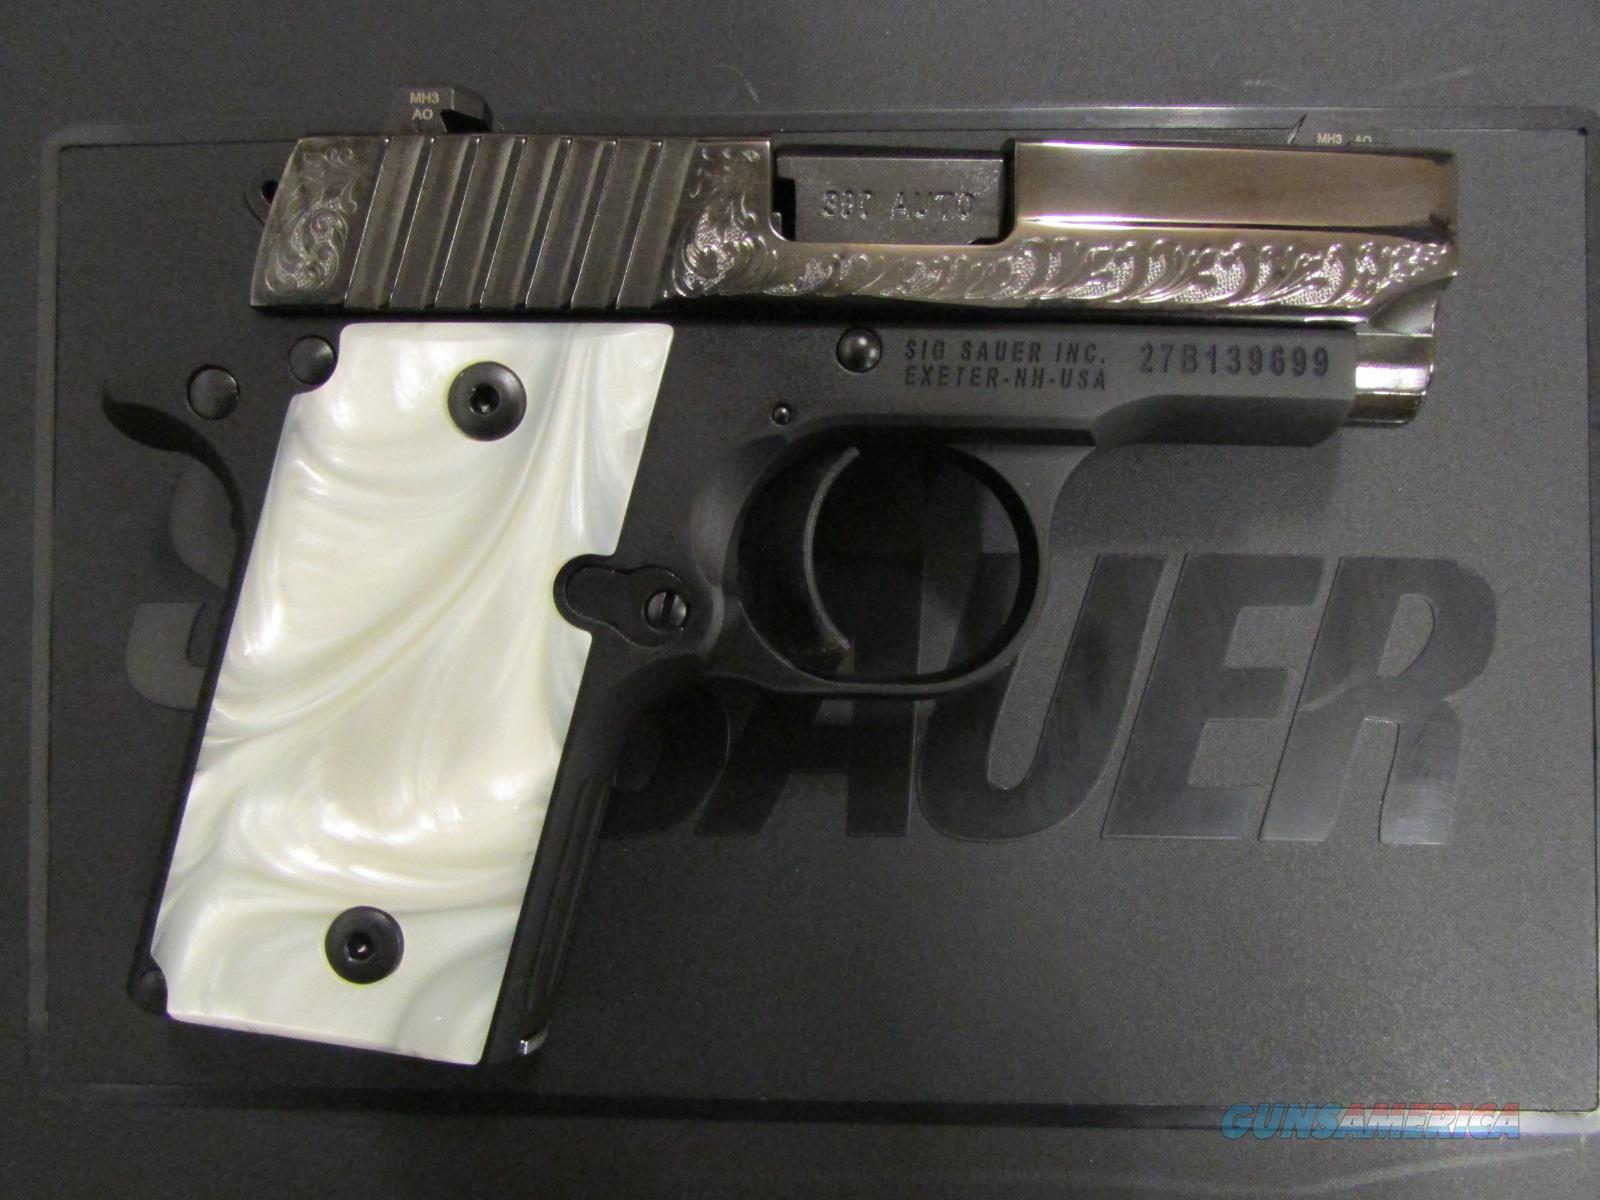 Sig Sauer P238 Pearl Black / Polish Stainless Engraved .380 ACP 238-380-ESW  Guns > Pistols > Sig - Sauer/Sigarms Pistols > P238